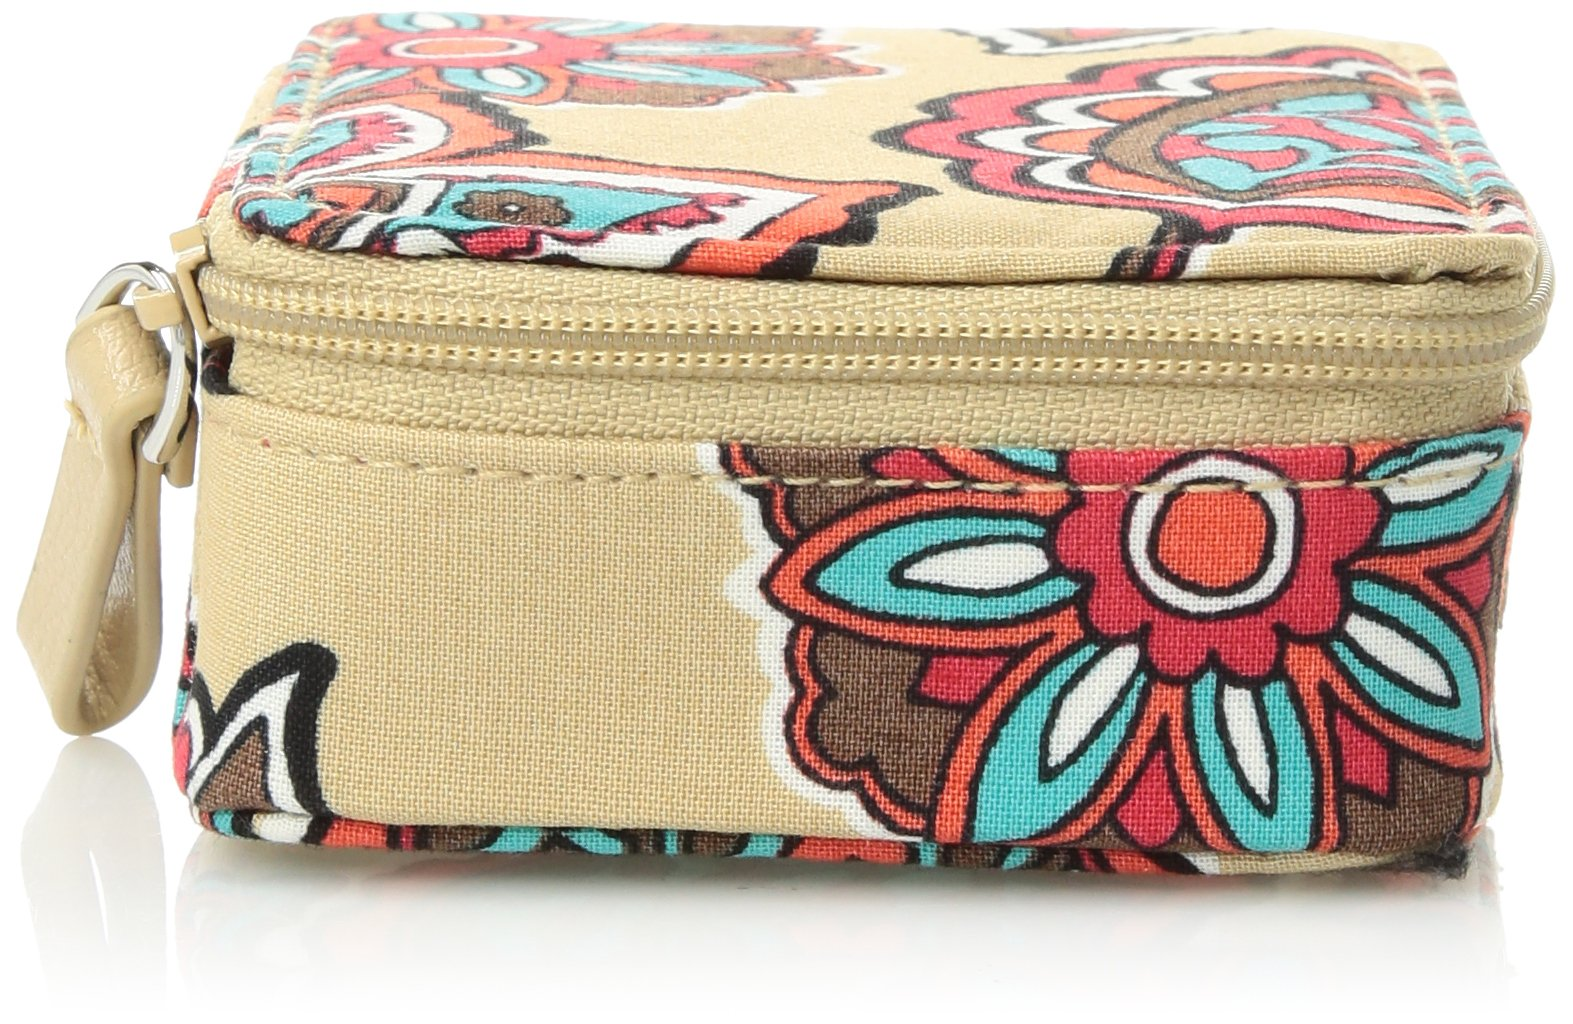 Vera Bradley Iconic Travel Pill Case, Signature Cotton, Desert Floral by Vera Bradley (Image #3)